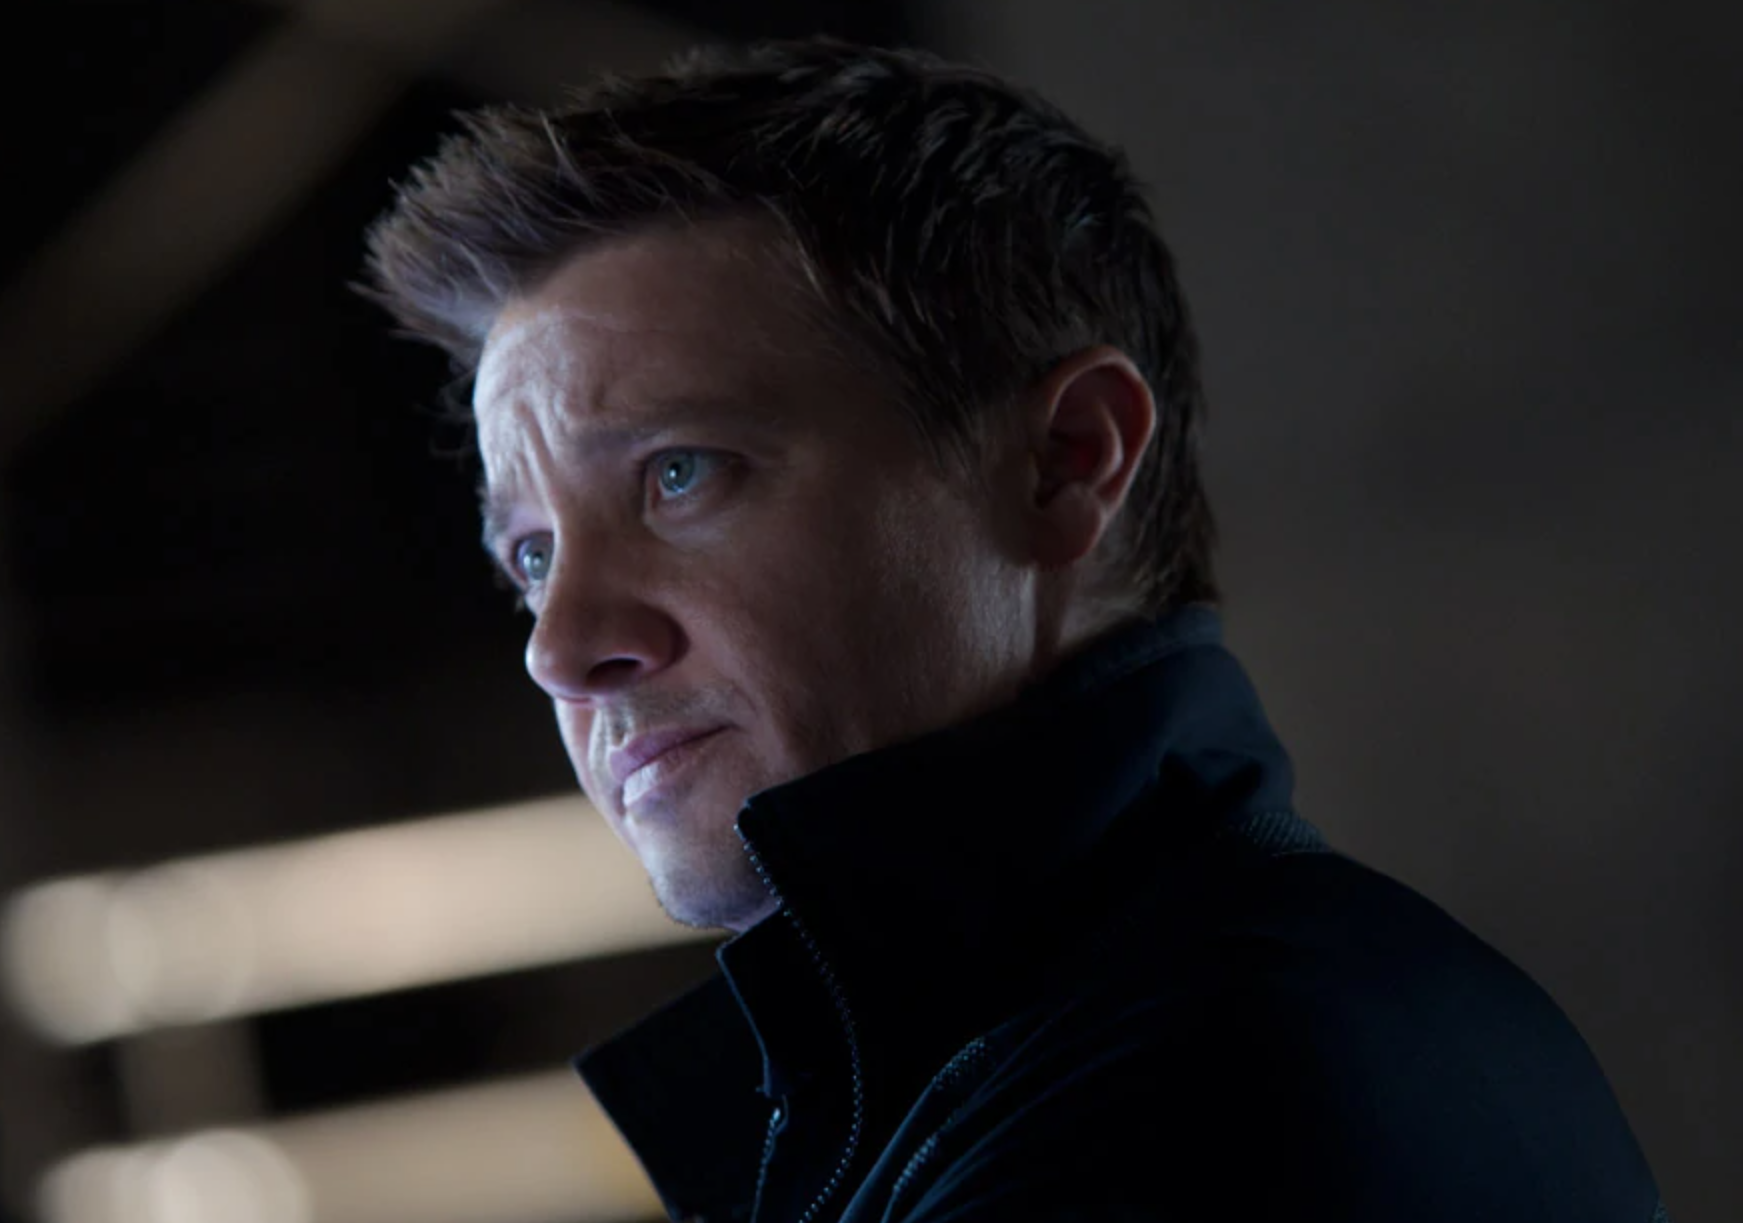 A close up of Hawkeye as he looks up at someone off screen